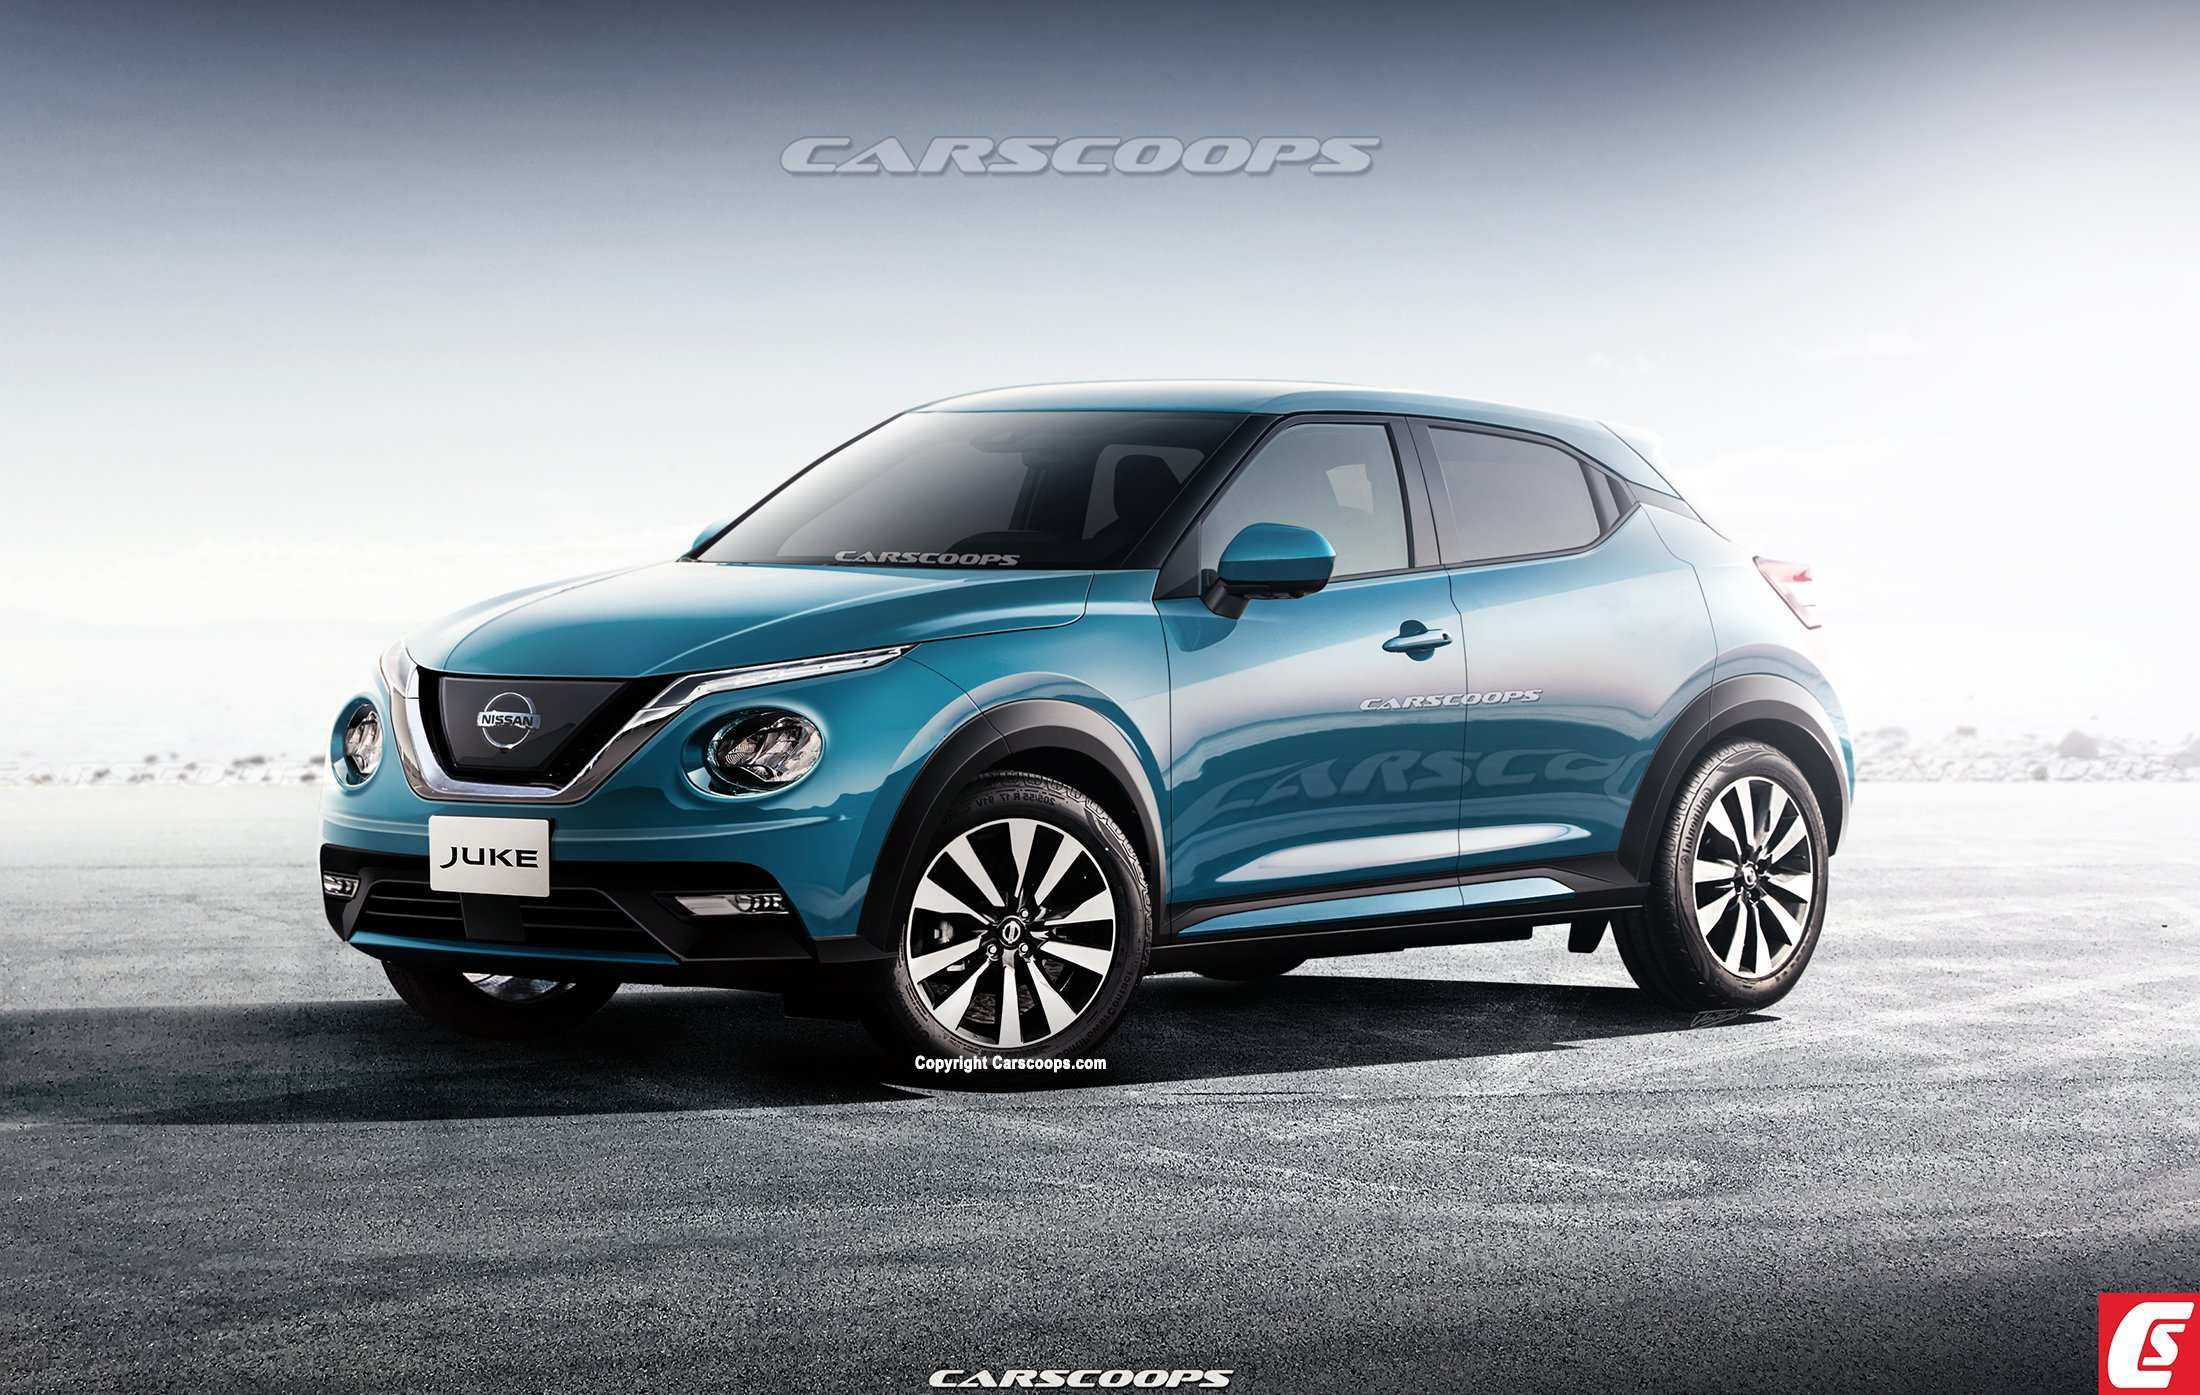 42 Best Review Nissan Juke 2020 Interior Specs and Review for Nissan Juke 2020 Interior